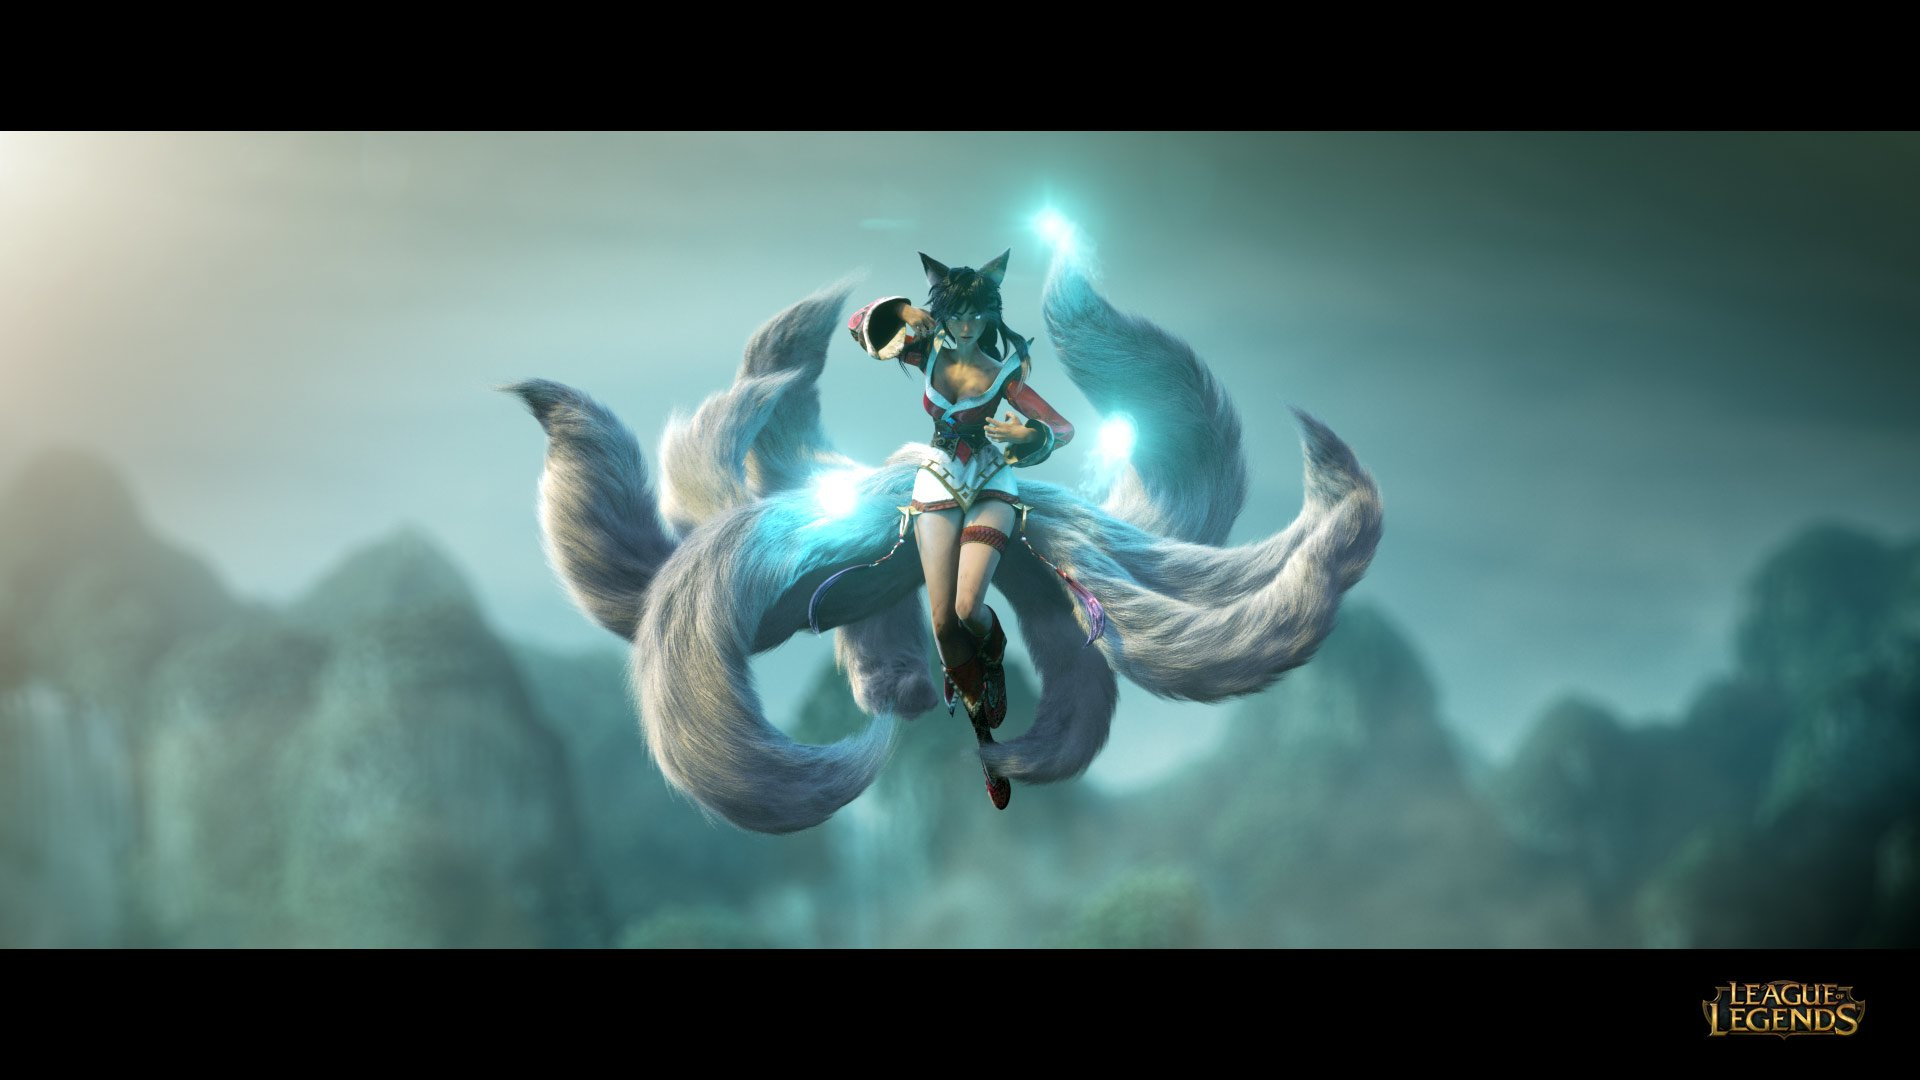 261 Ahri League Of Legends Hd Wallpapers Background Images